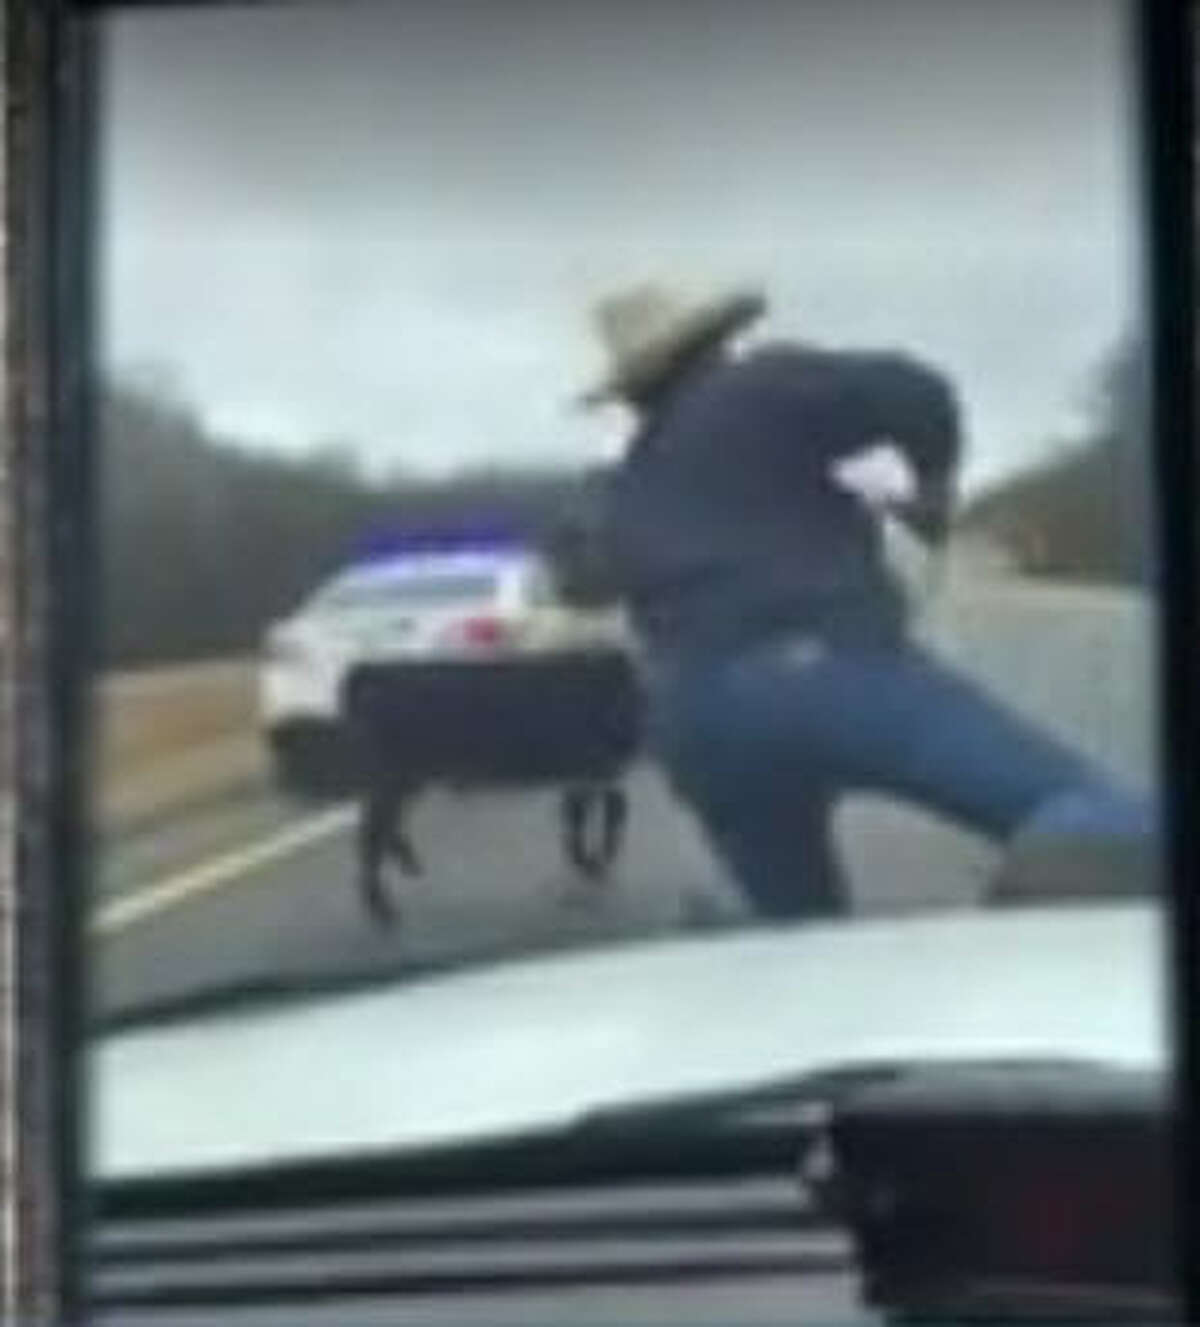 When a calf got loose on Highway 79 in rural Henry County, Tenn., the local sheriff asked a cowboy friend to lasso it, riding on the hood of the sheriff's car, Tuesday, Jan. 3, 2017. (NewsChannel5.com)